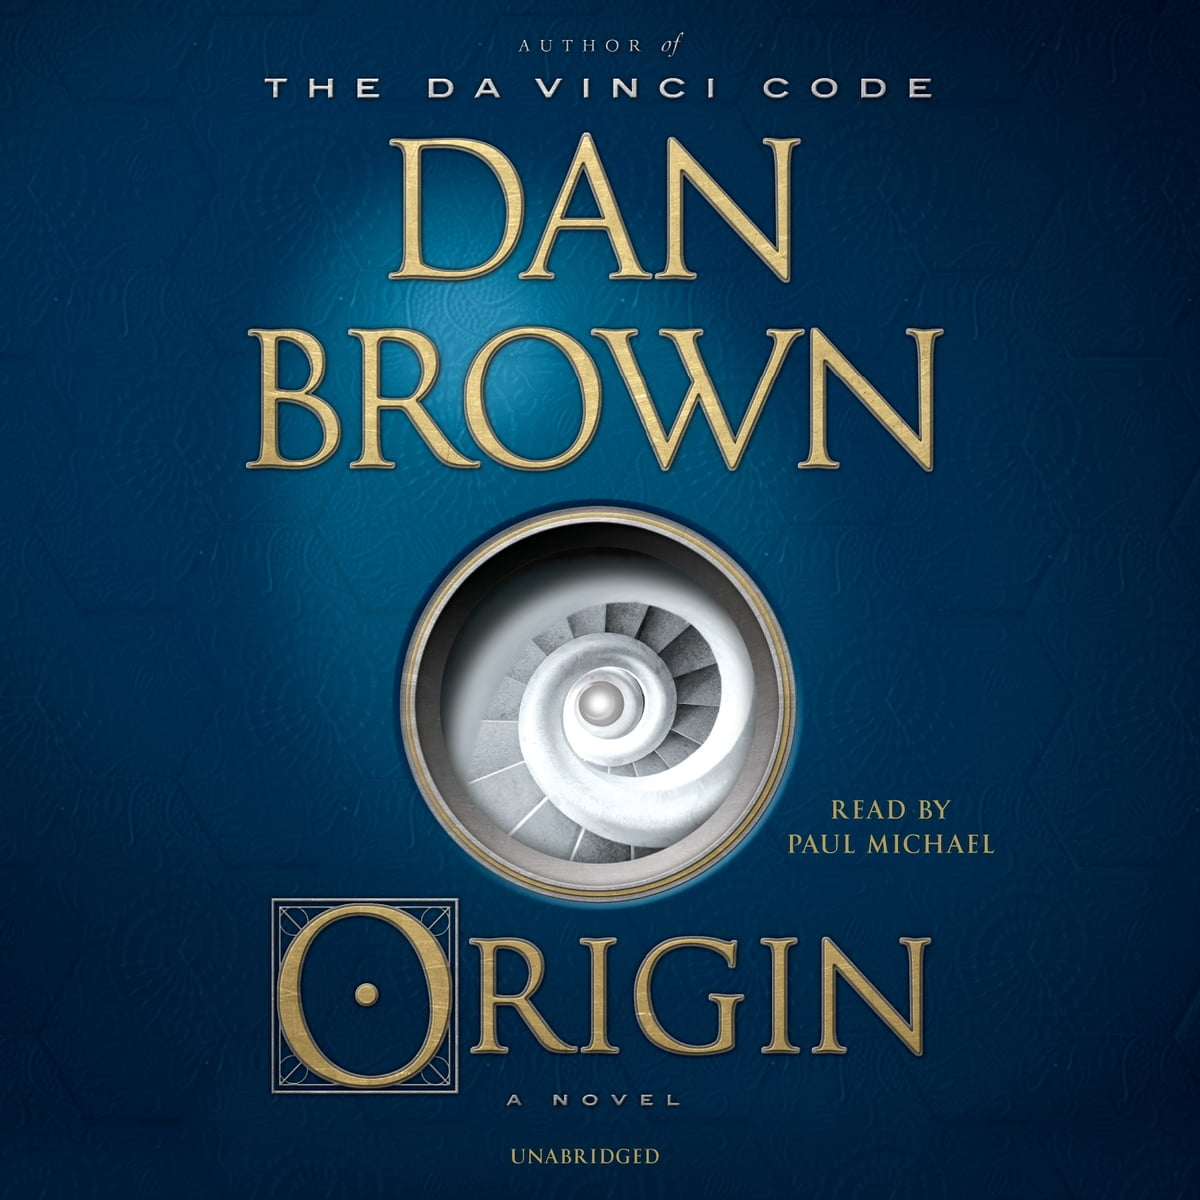 Origin audiobook by dan brown 9780739319307 rakuten kobo buycottarizona